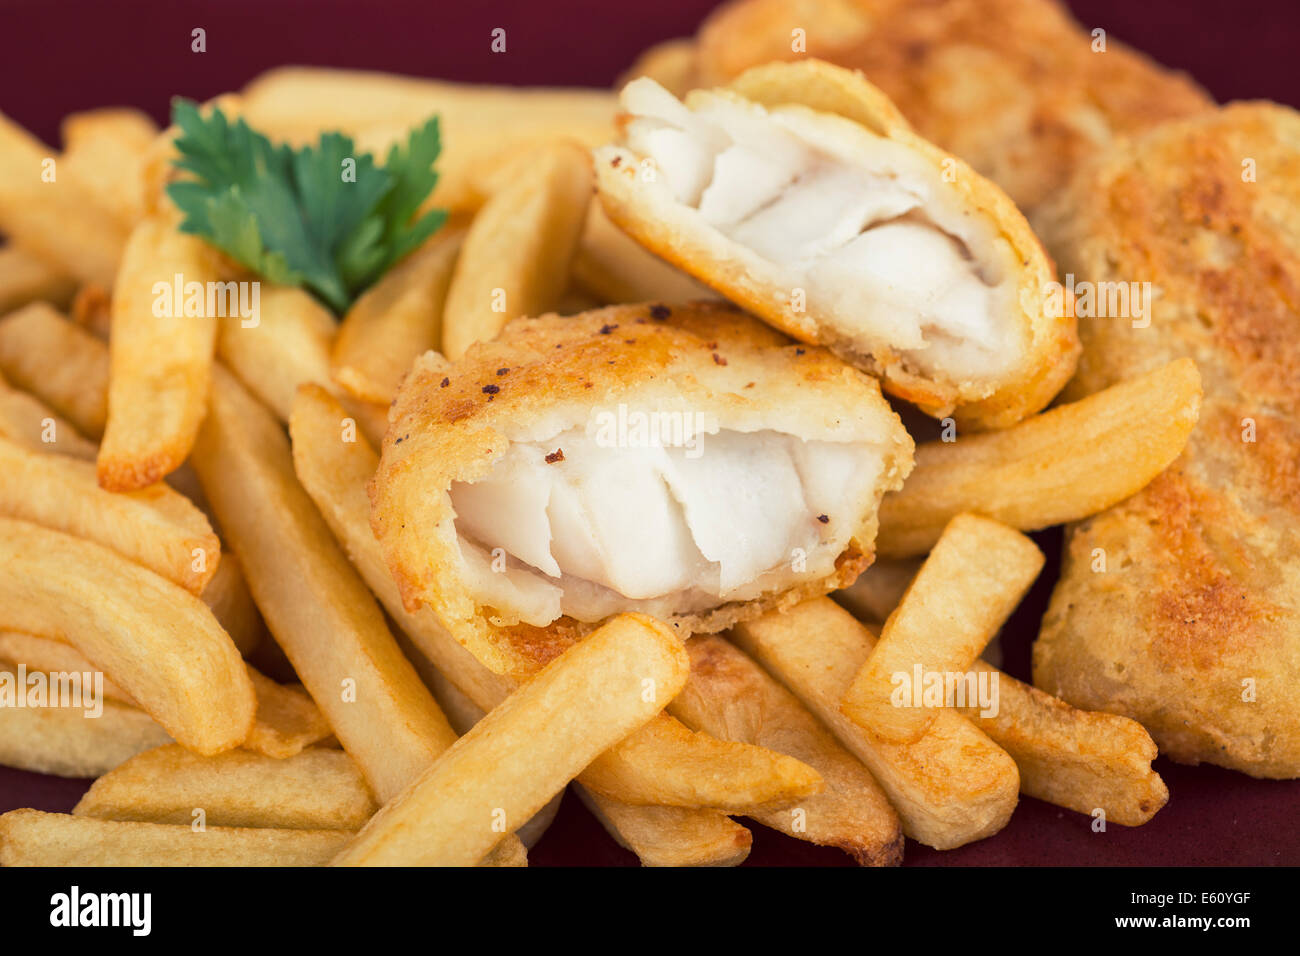 Fish and Chips, Battered Fish Fillet with Potato, Fries - Stock Image